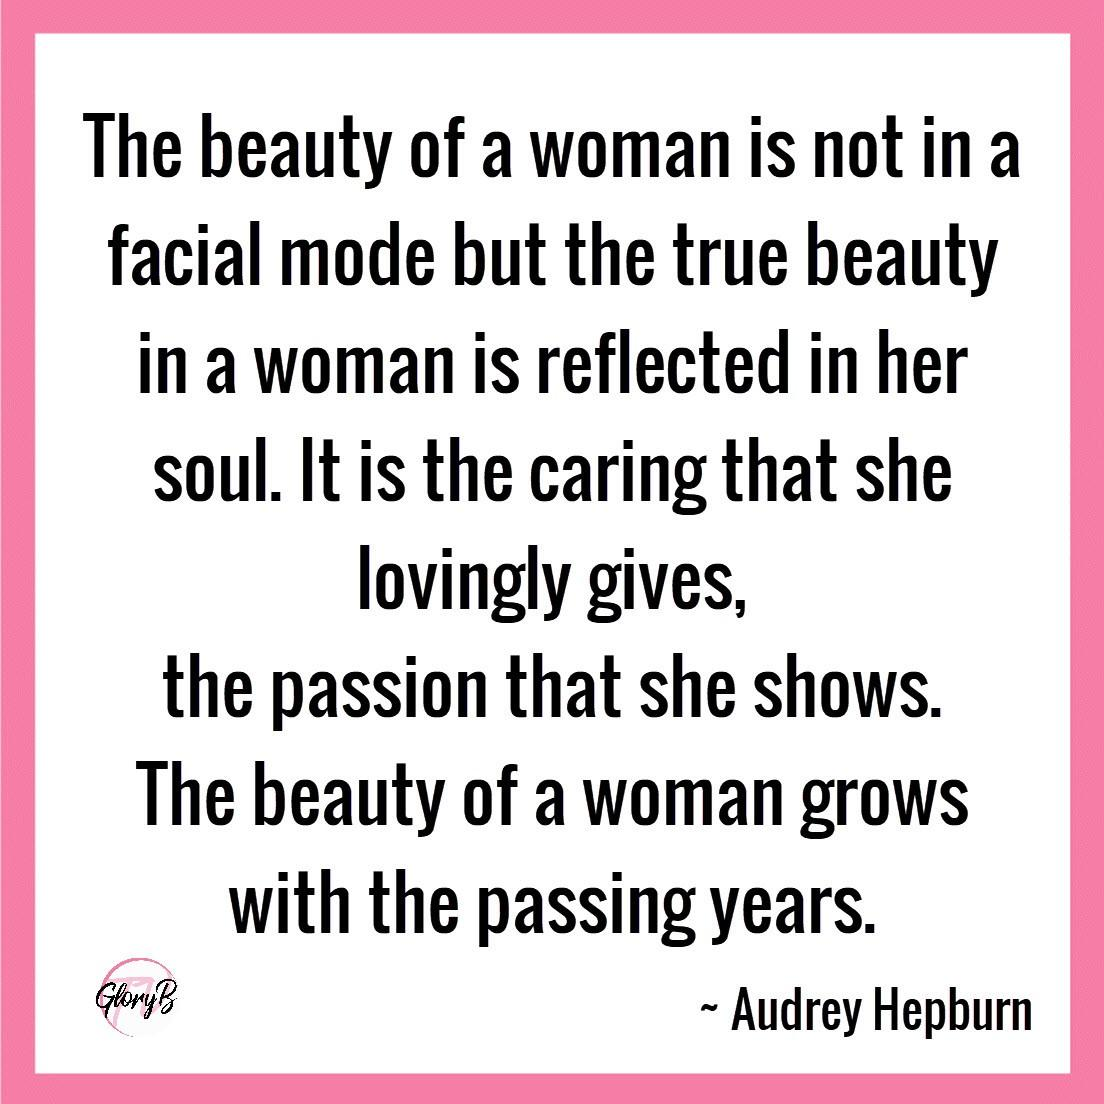 I love this quote from Audrey Hepburn, one of my favorite actresses. Enjoy!  #audreyhepburnquote #audreyhepburnquotes  #audreyhepburnstyle #audreyhepburnfan  #womenover50 #womenover60 #bestager #beautyhasnoage #disruptingaging #redefiningage #antiagingskincare pic.twitter.com/SnQCtRCYcd